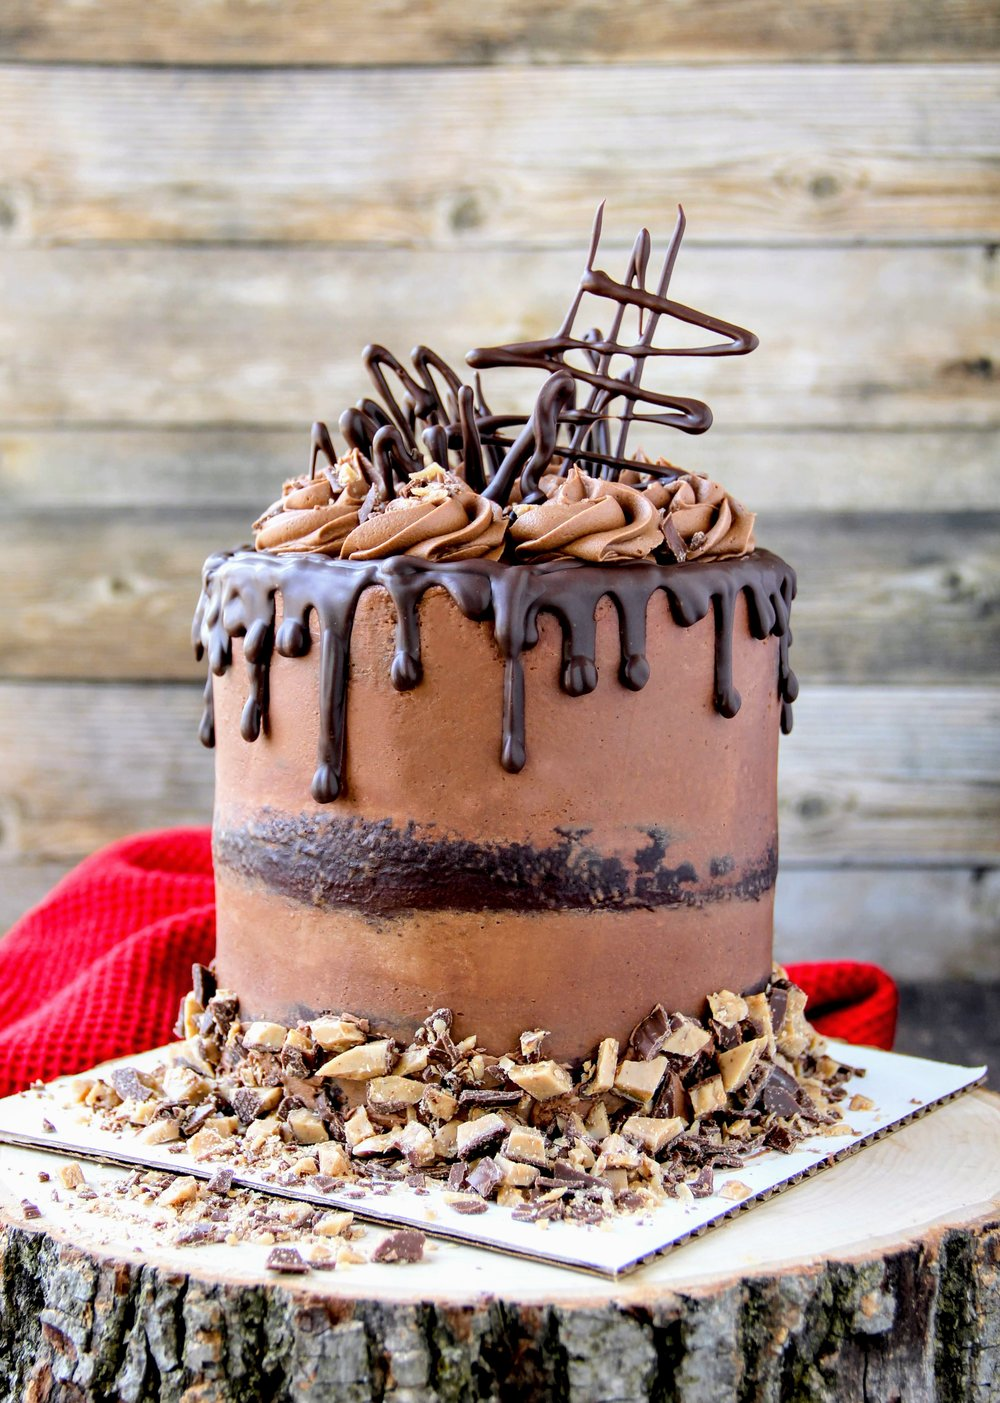 Naked Chocolate Cake 2.jpg